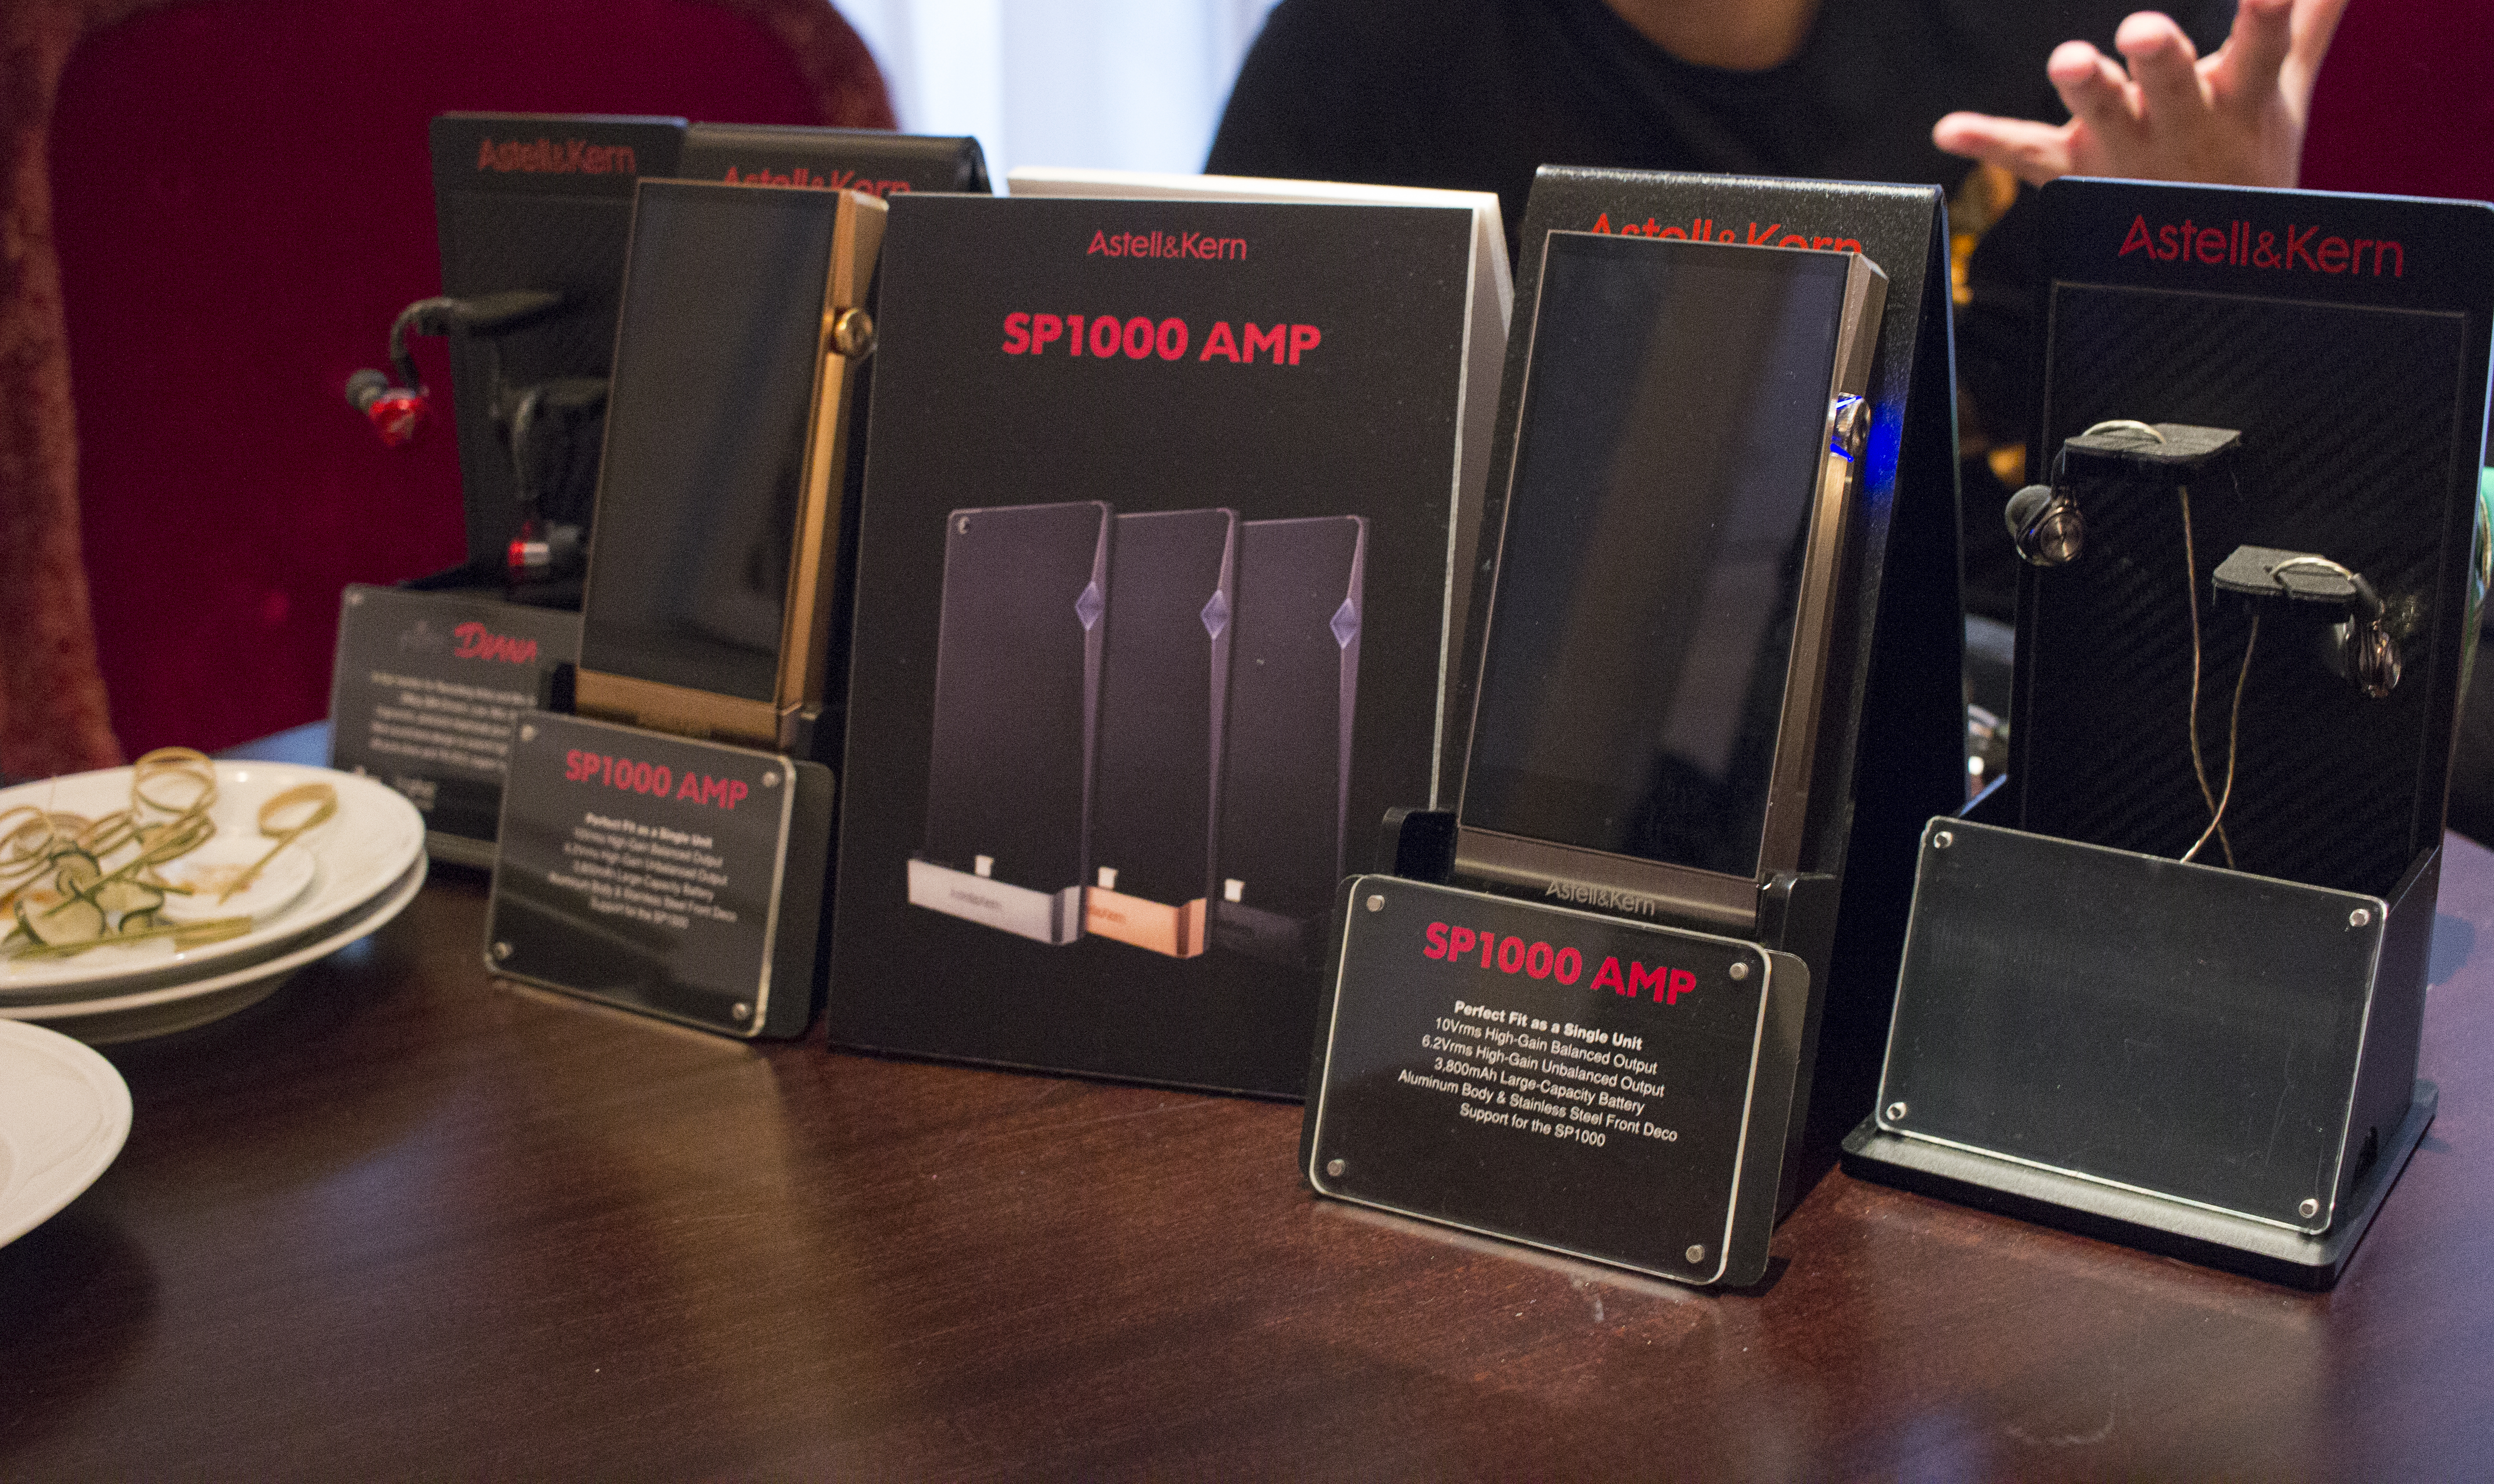 Astell&Kern launches new high-end audio players: SP1000 AMP